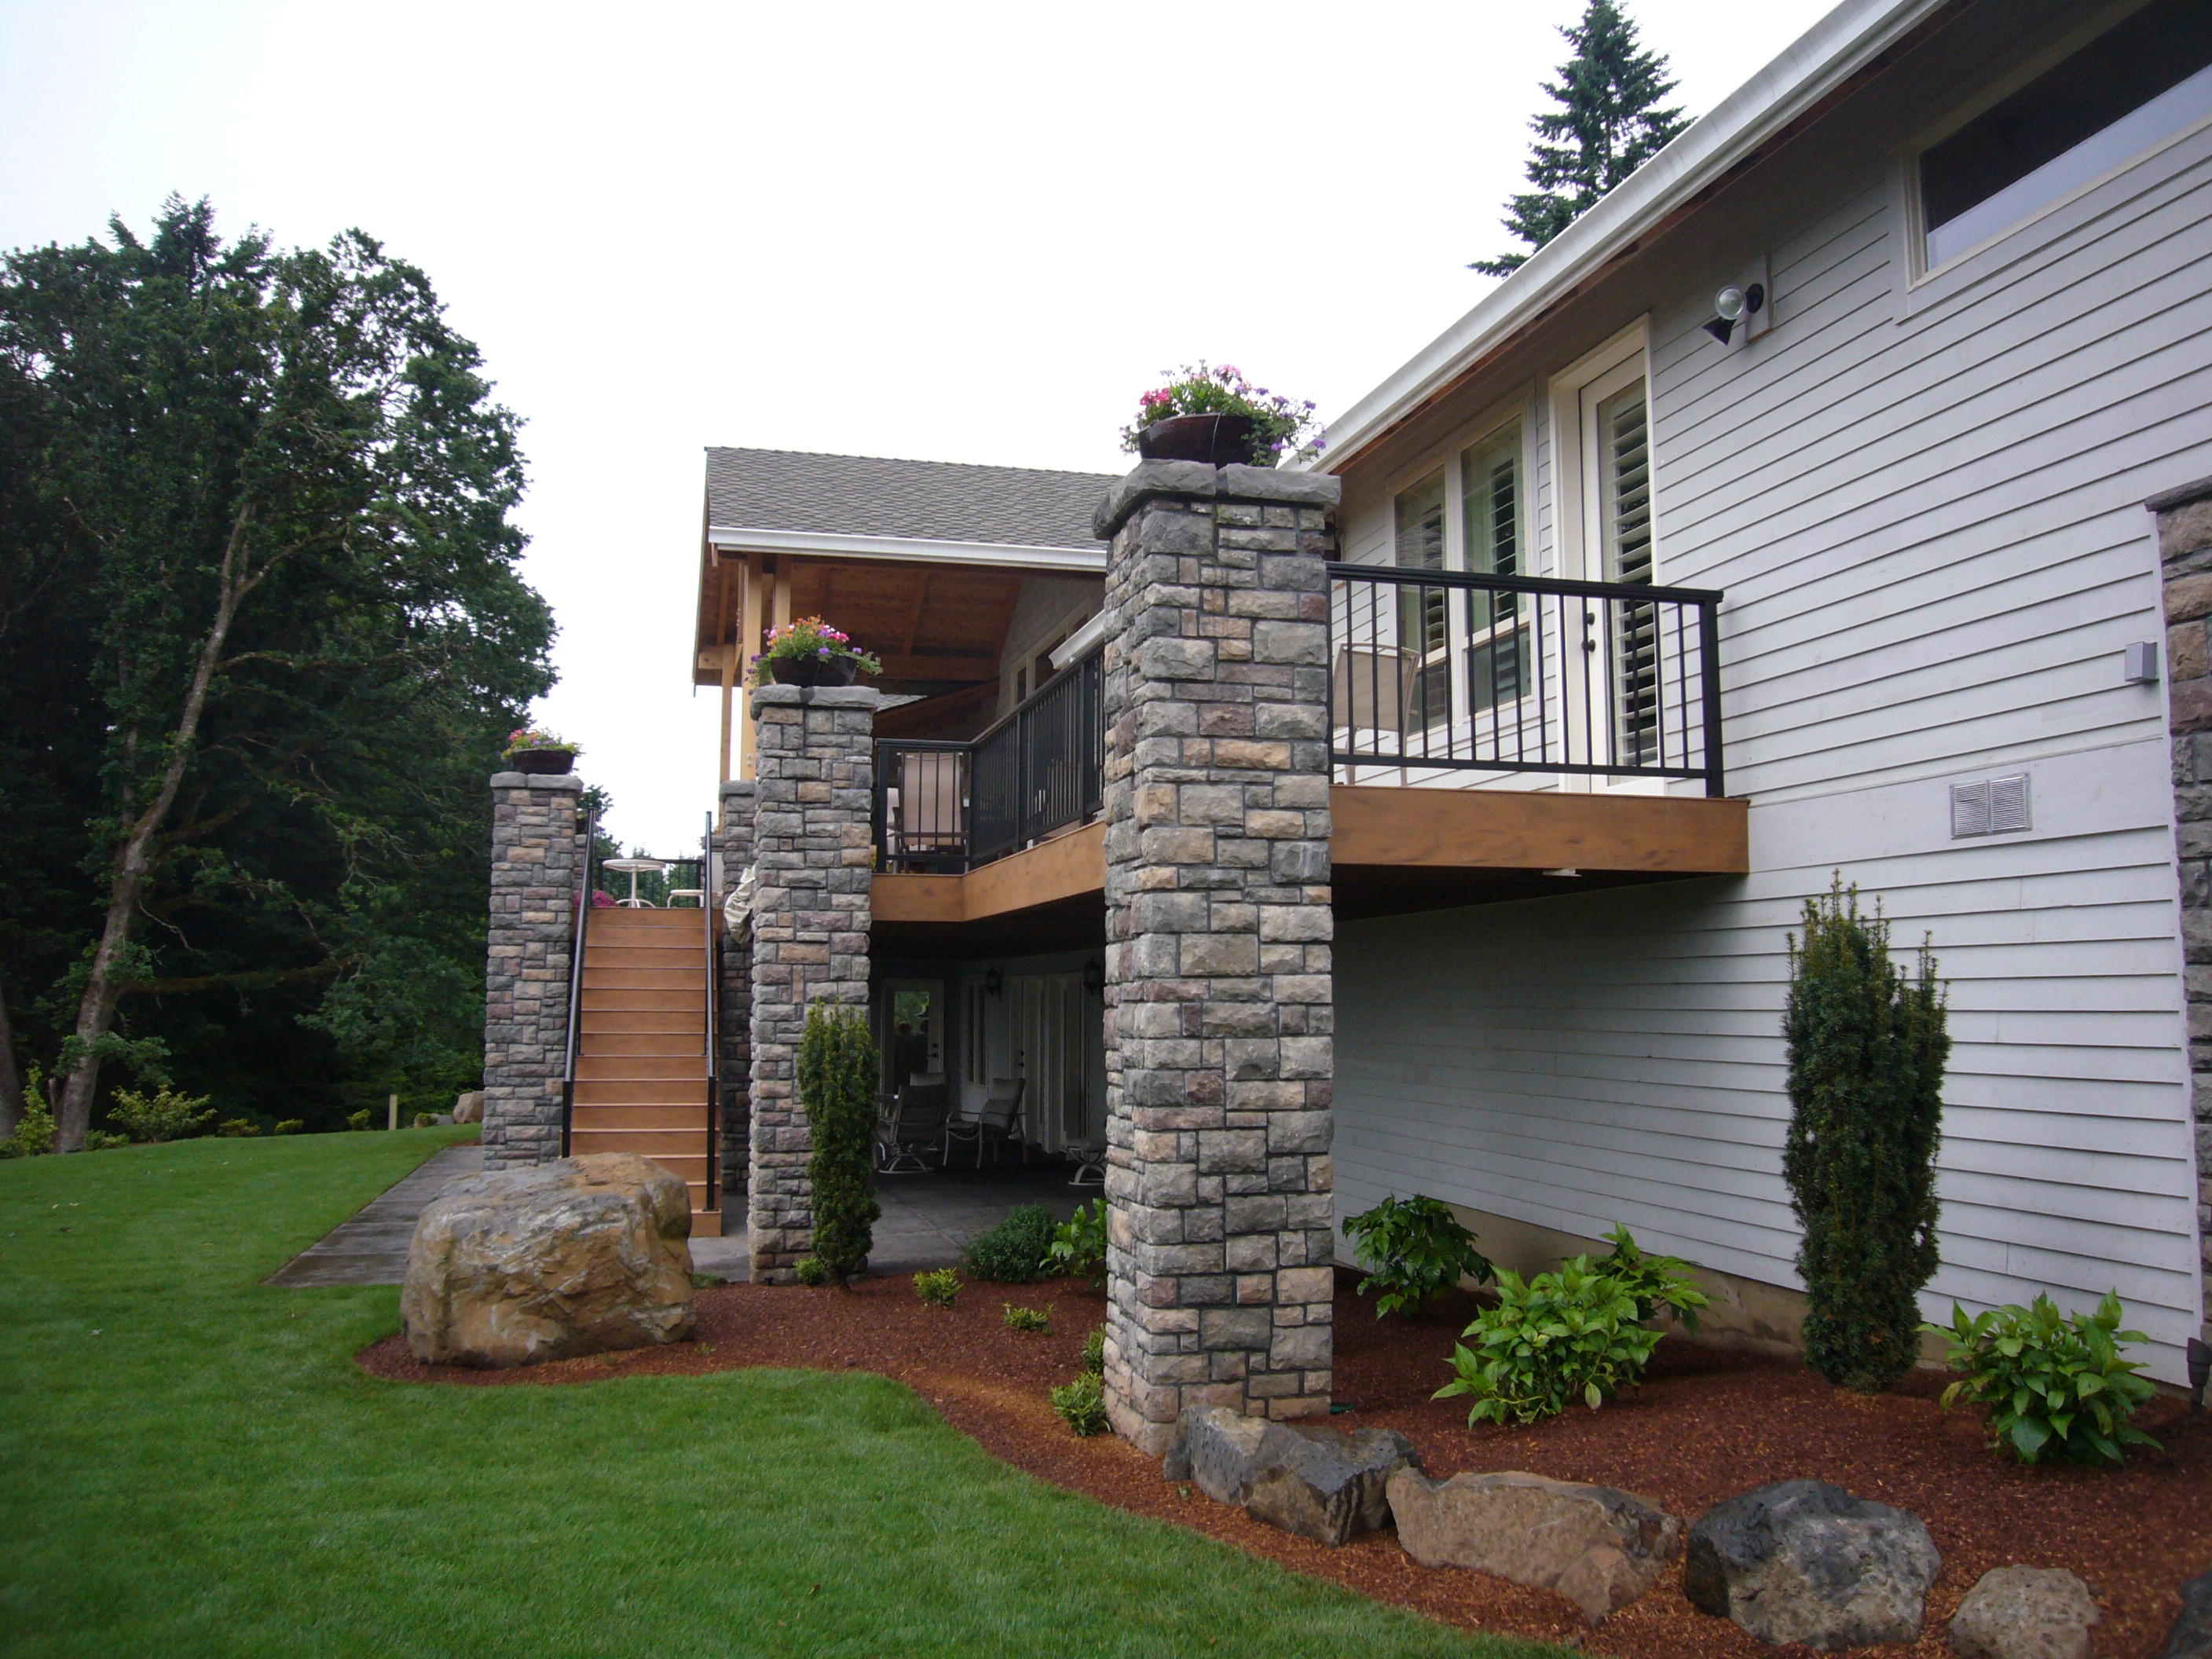 Residential Landscape Maintenance With Aurora Landscape Nw